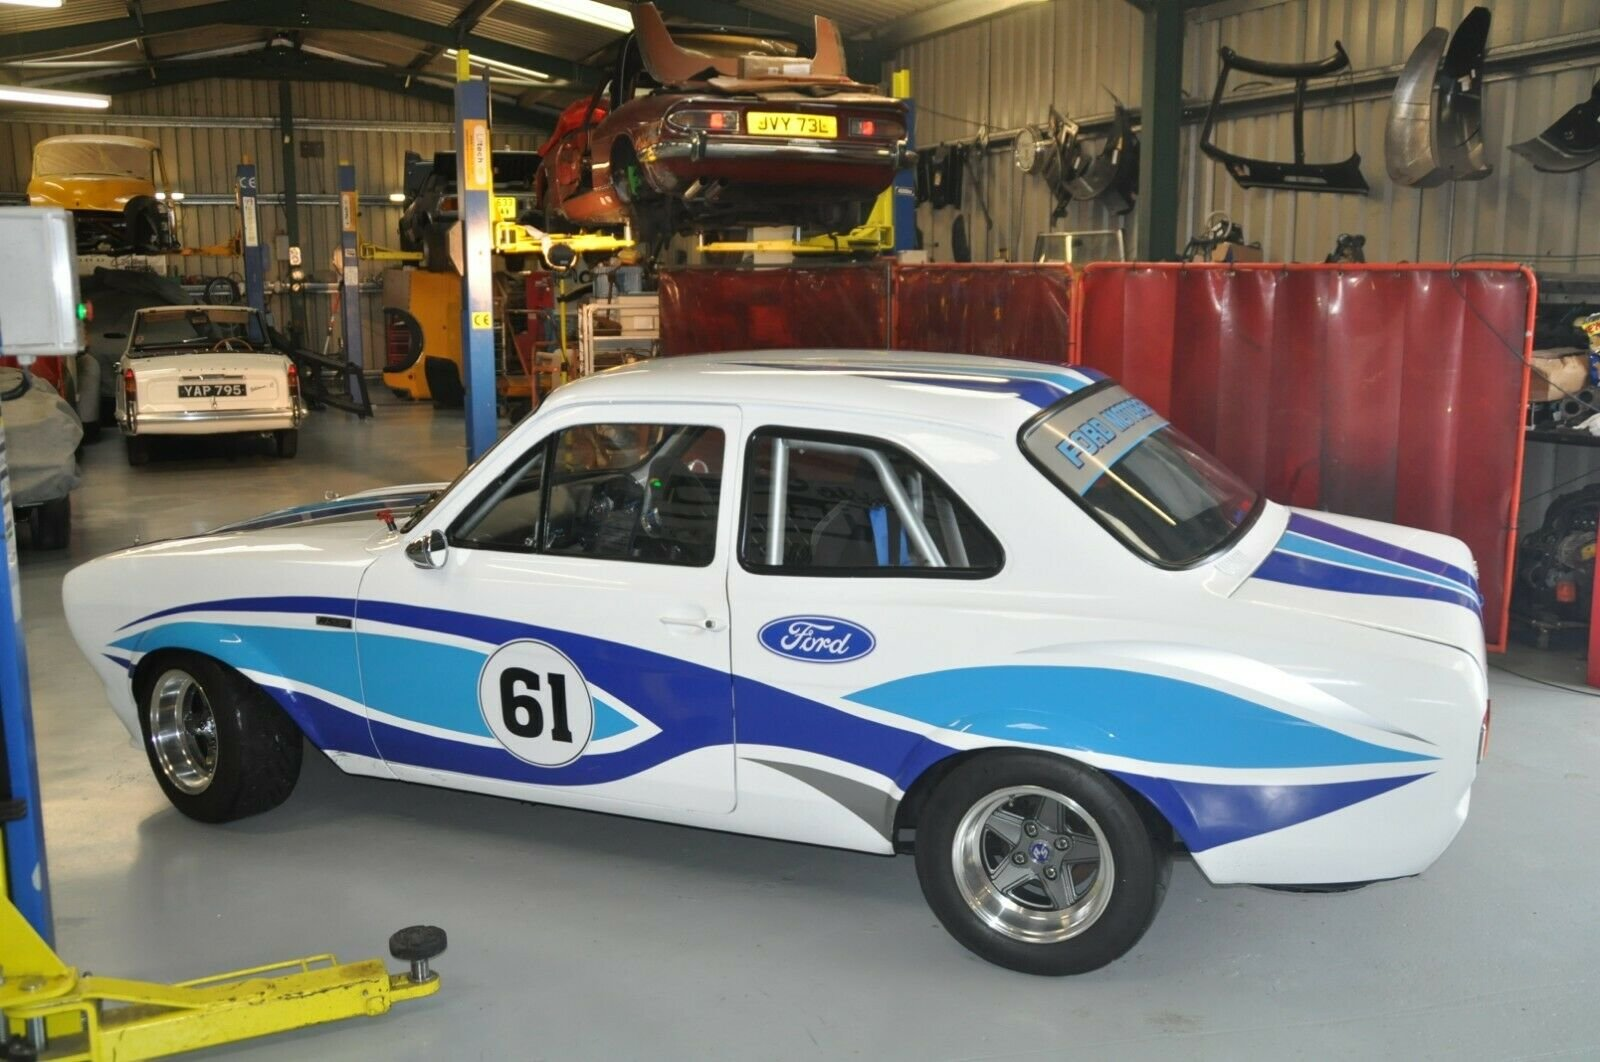 MK1 FORD ESCORT RACE CAR 2.0 PINTO 5 SPEED TYPE 9 GEARBOX MO For Sale (picture 3 of 6)